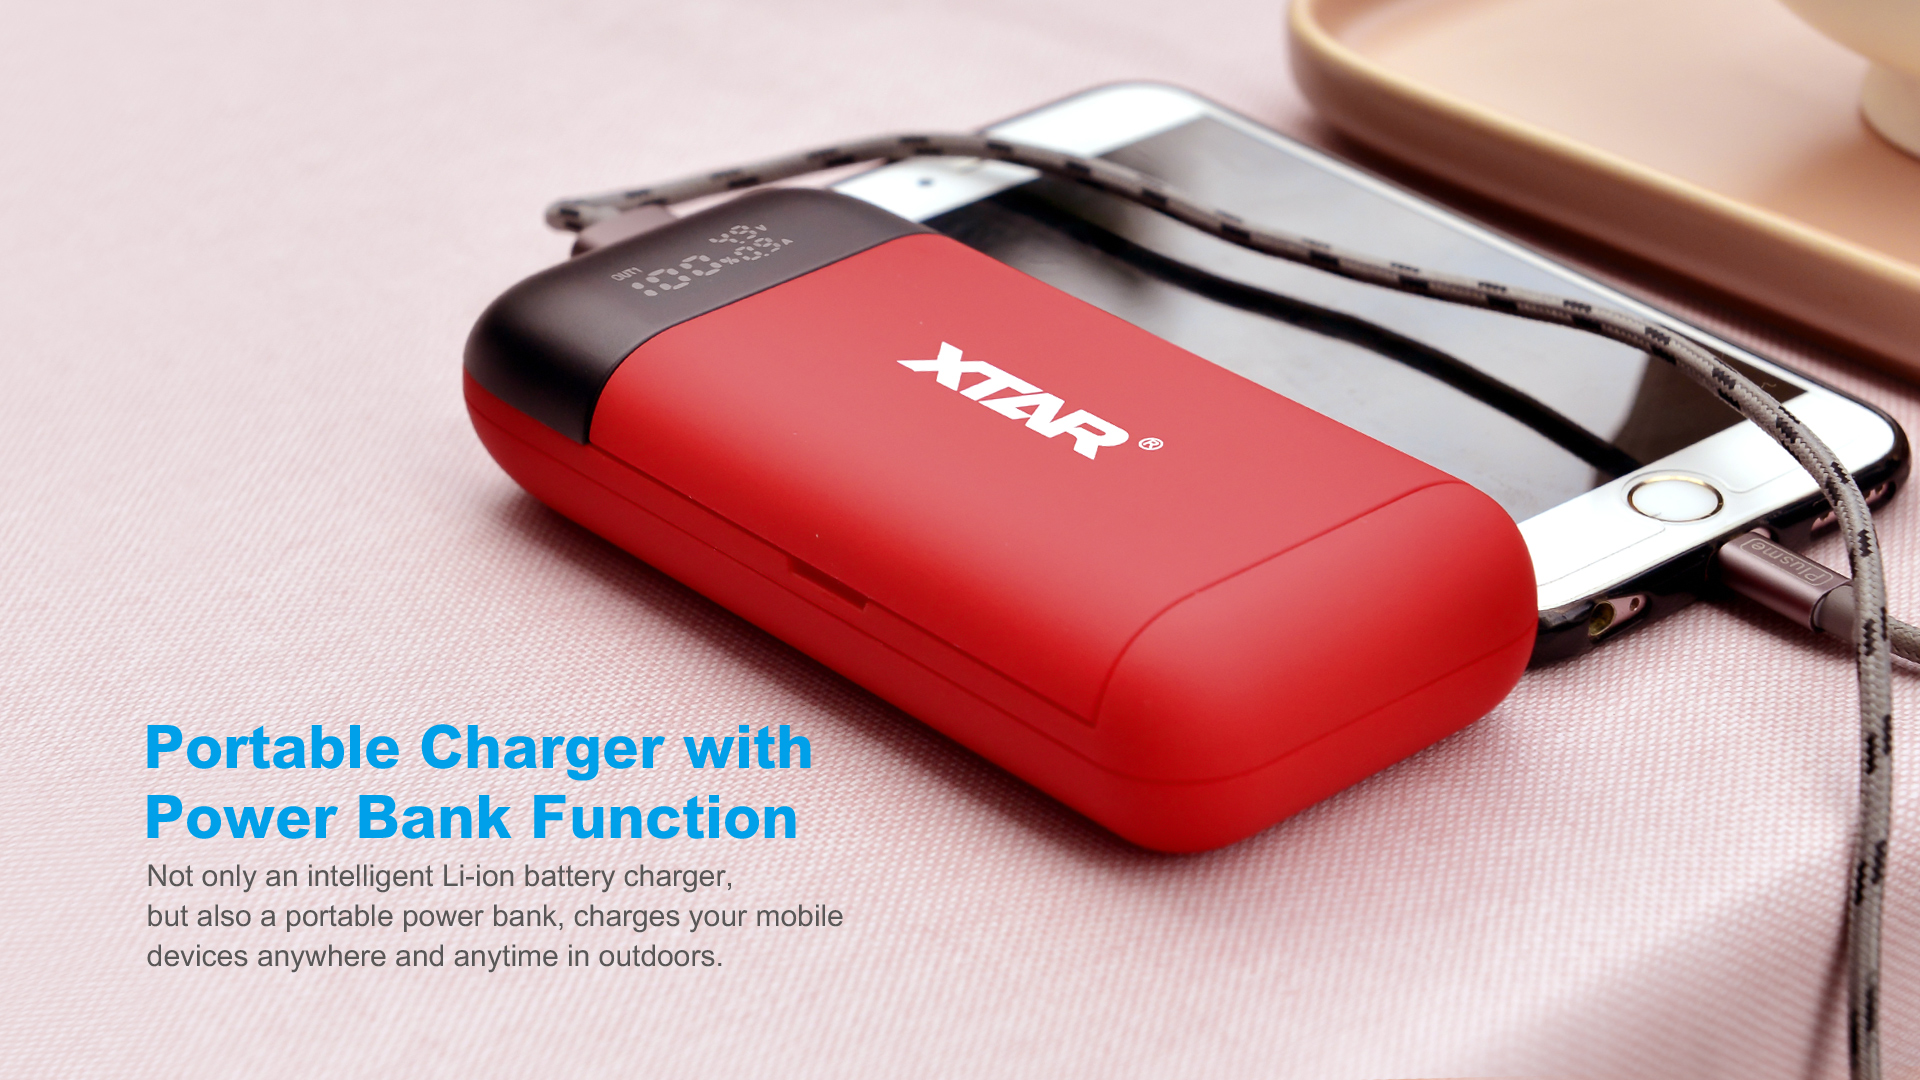 PB2s Powerbank Ultimate